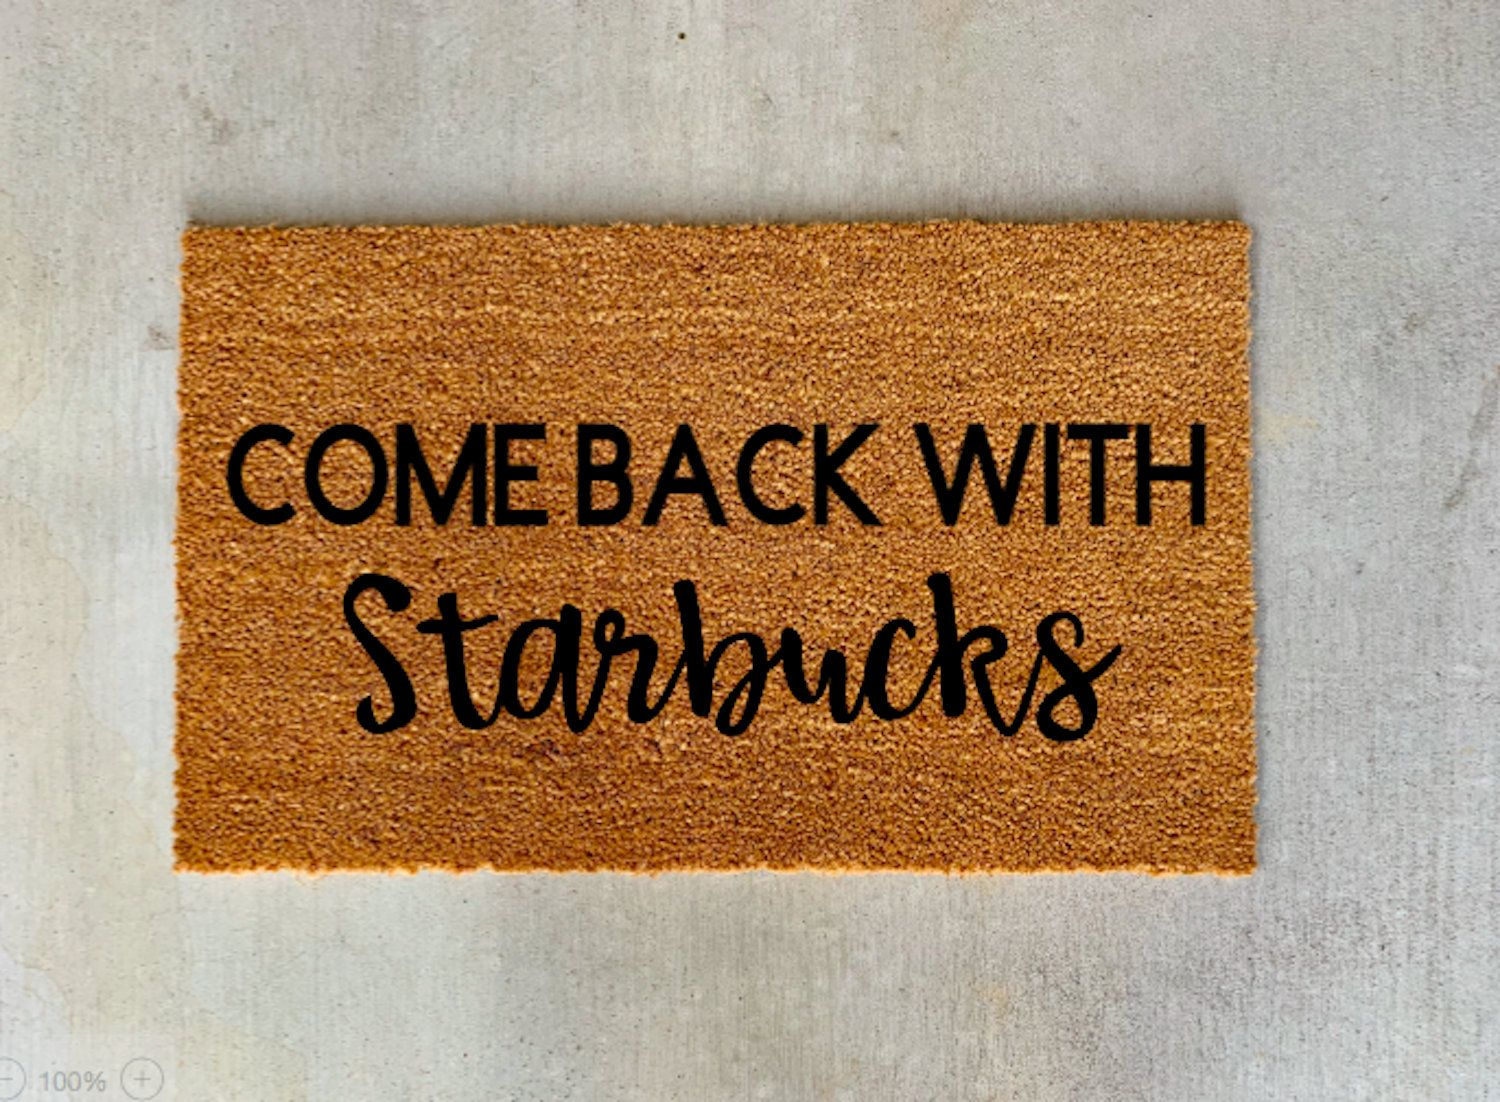 Come Back With Starbucks Doormat Funny Doormat Funny Gift